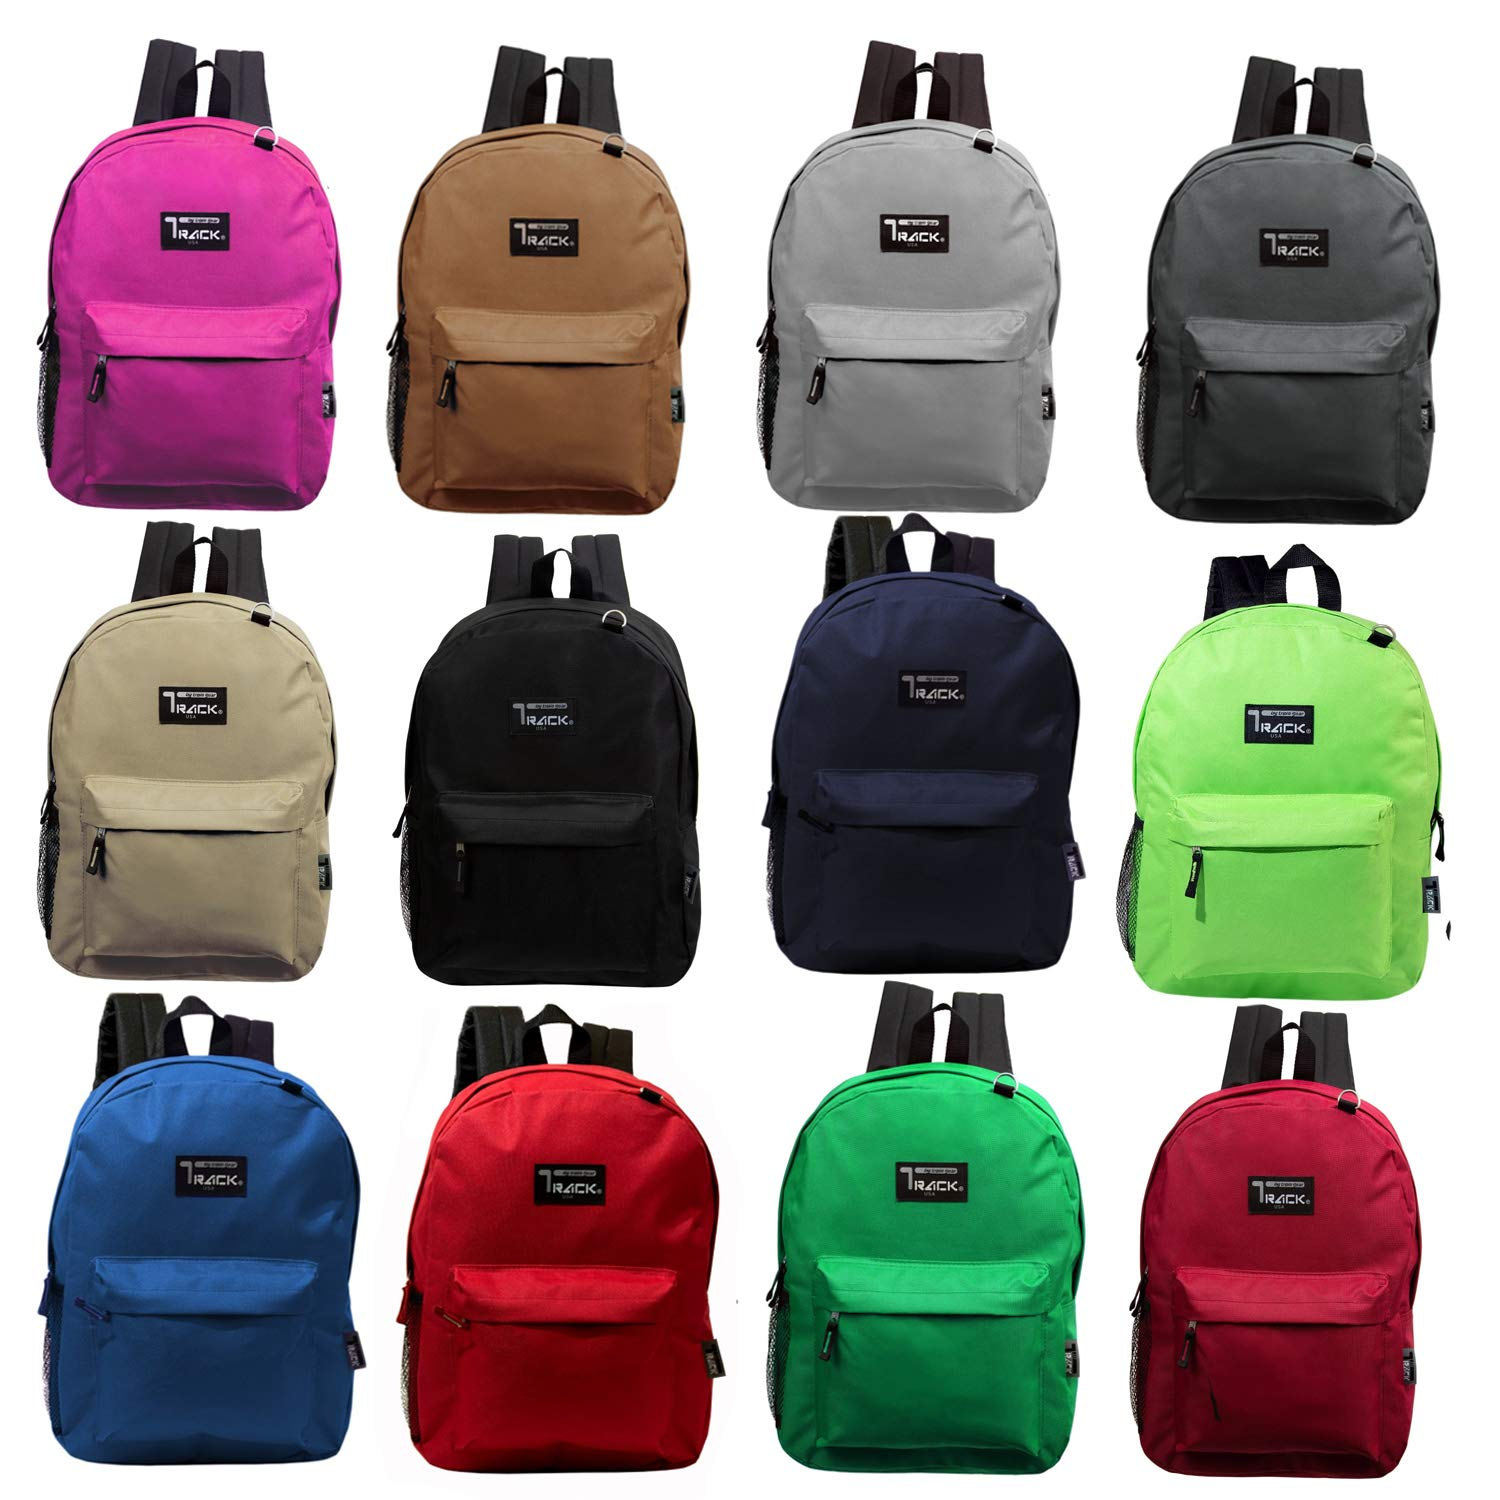 17'' Classic Wholesale Premium Backpacks - Bulk Case of 24 Bookbags (8 to 12 Assorted Colors) by Track